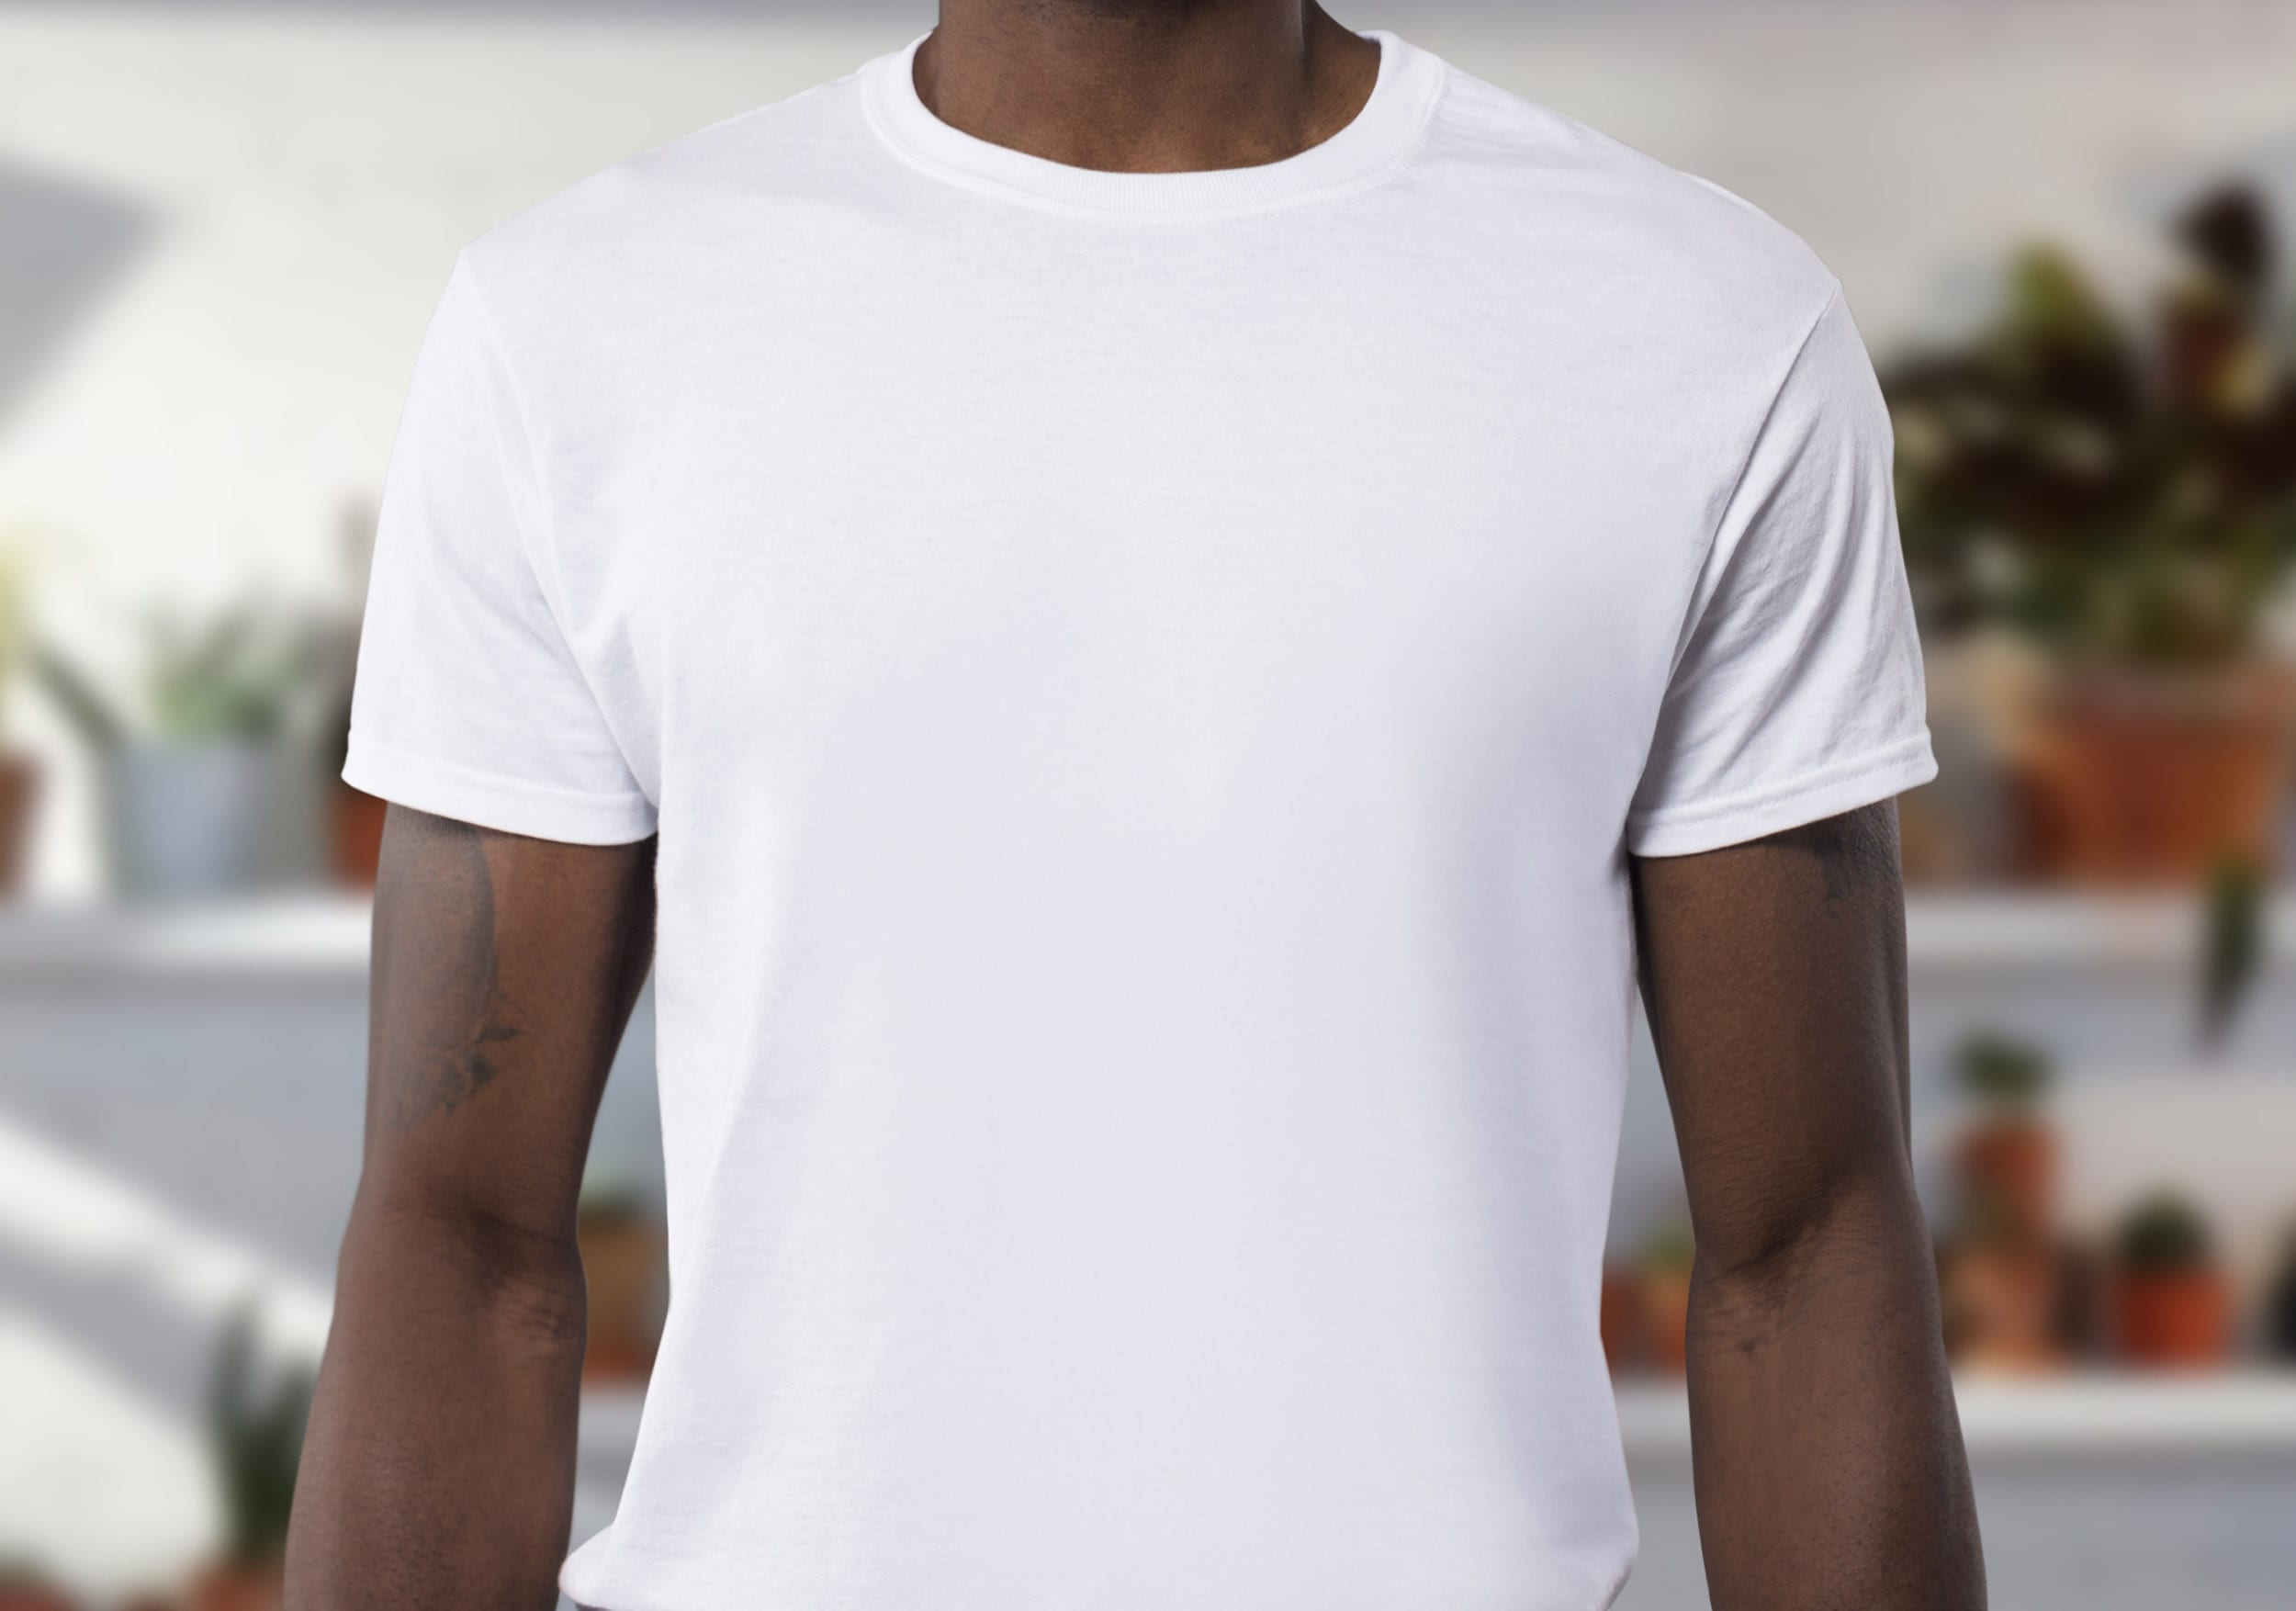 696bedae The Best T-Shirts for Travel - Tortuga Backpacks Blog